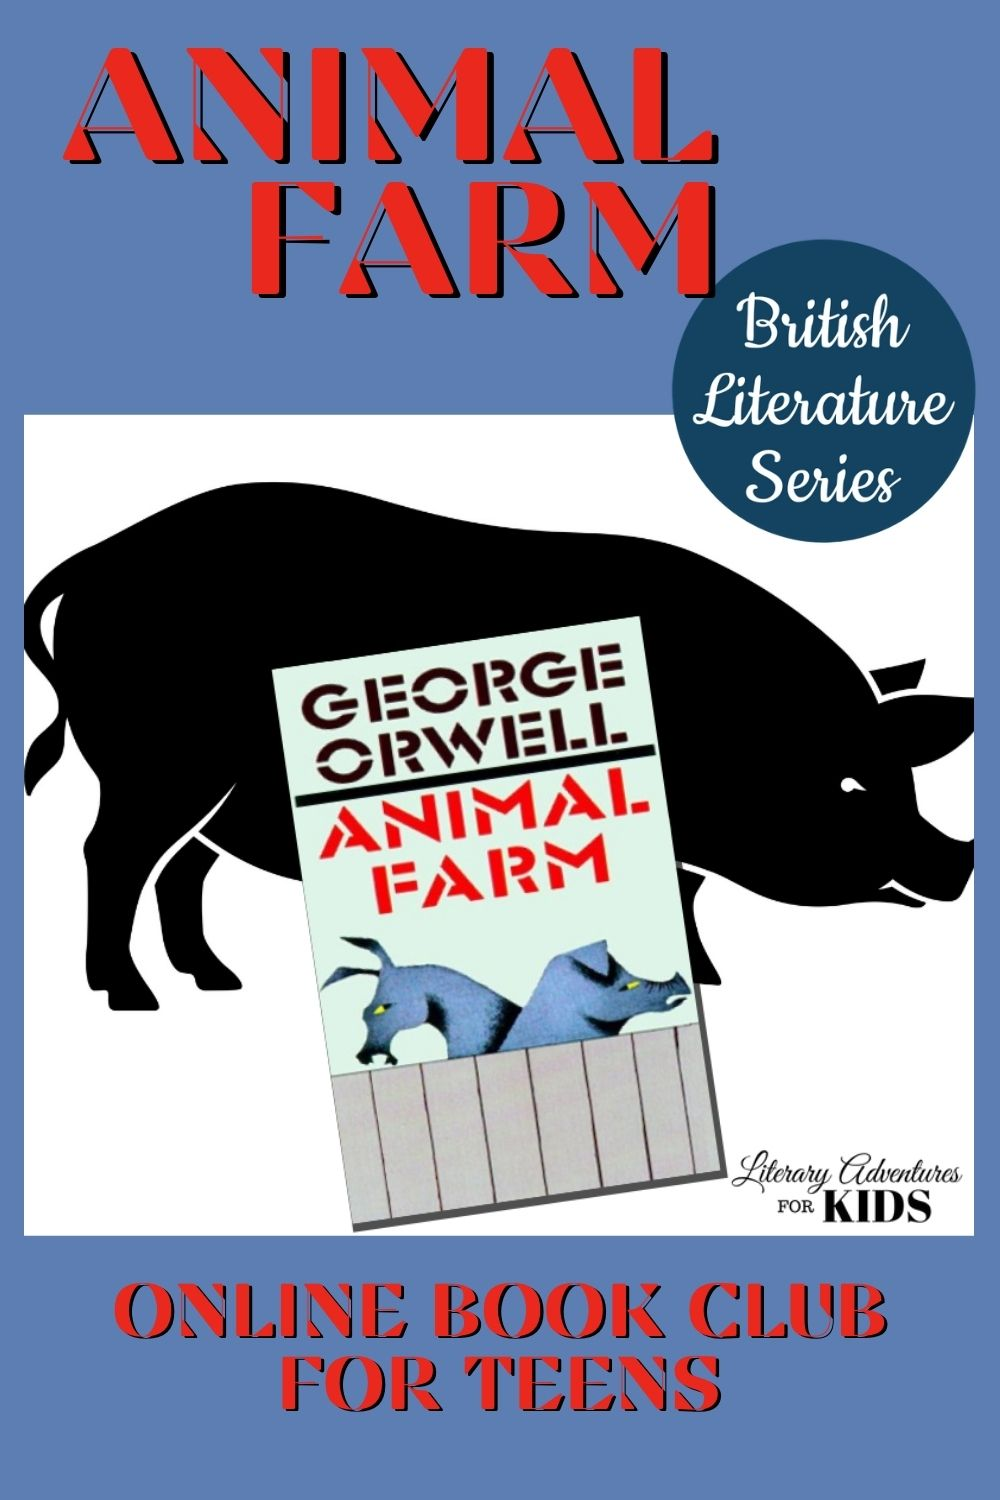 Animal Farm Online Book Club For Teens British Classic Literature Series Online Books For Kids Online Book Club Animal Books